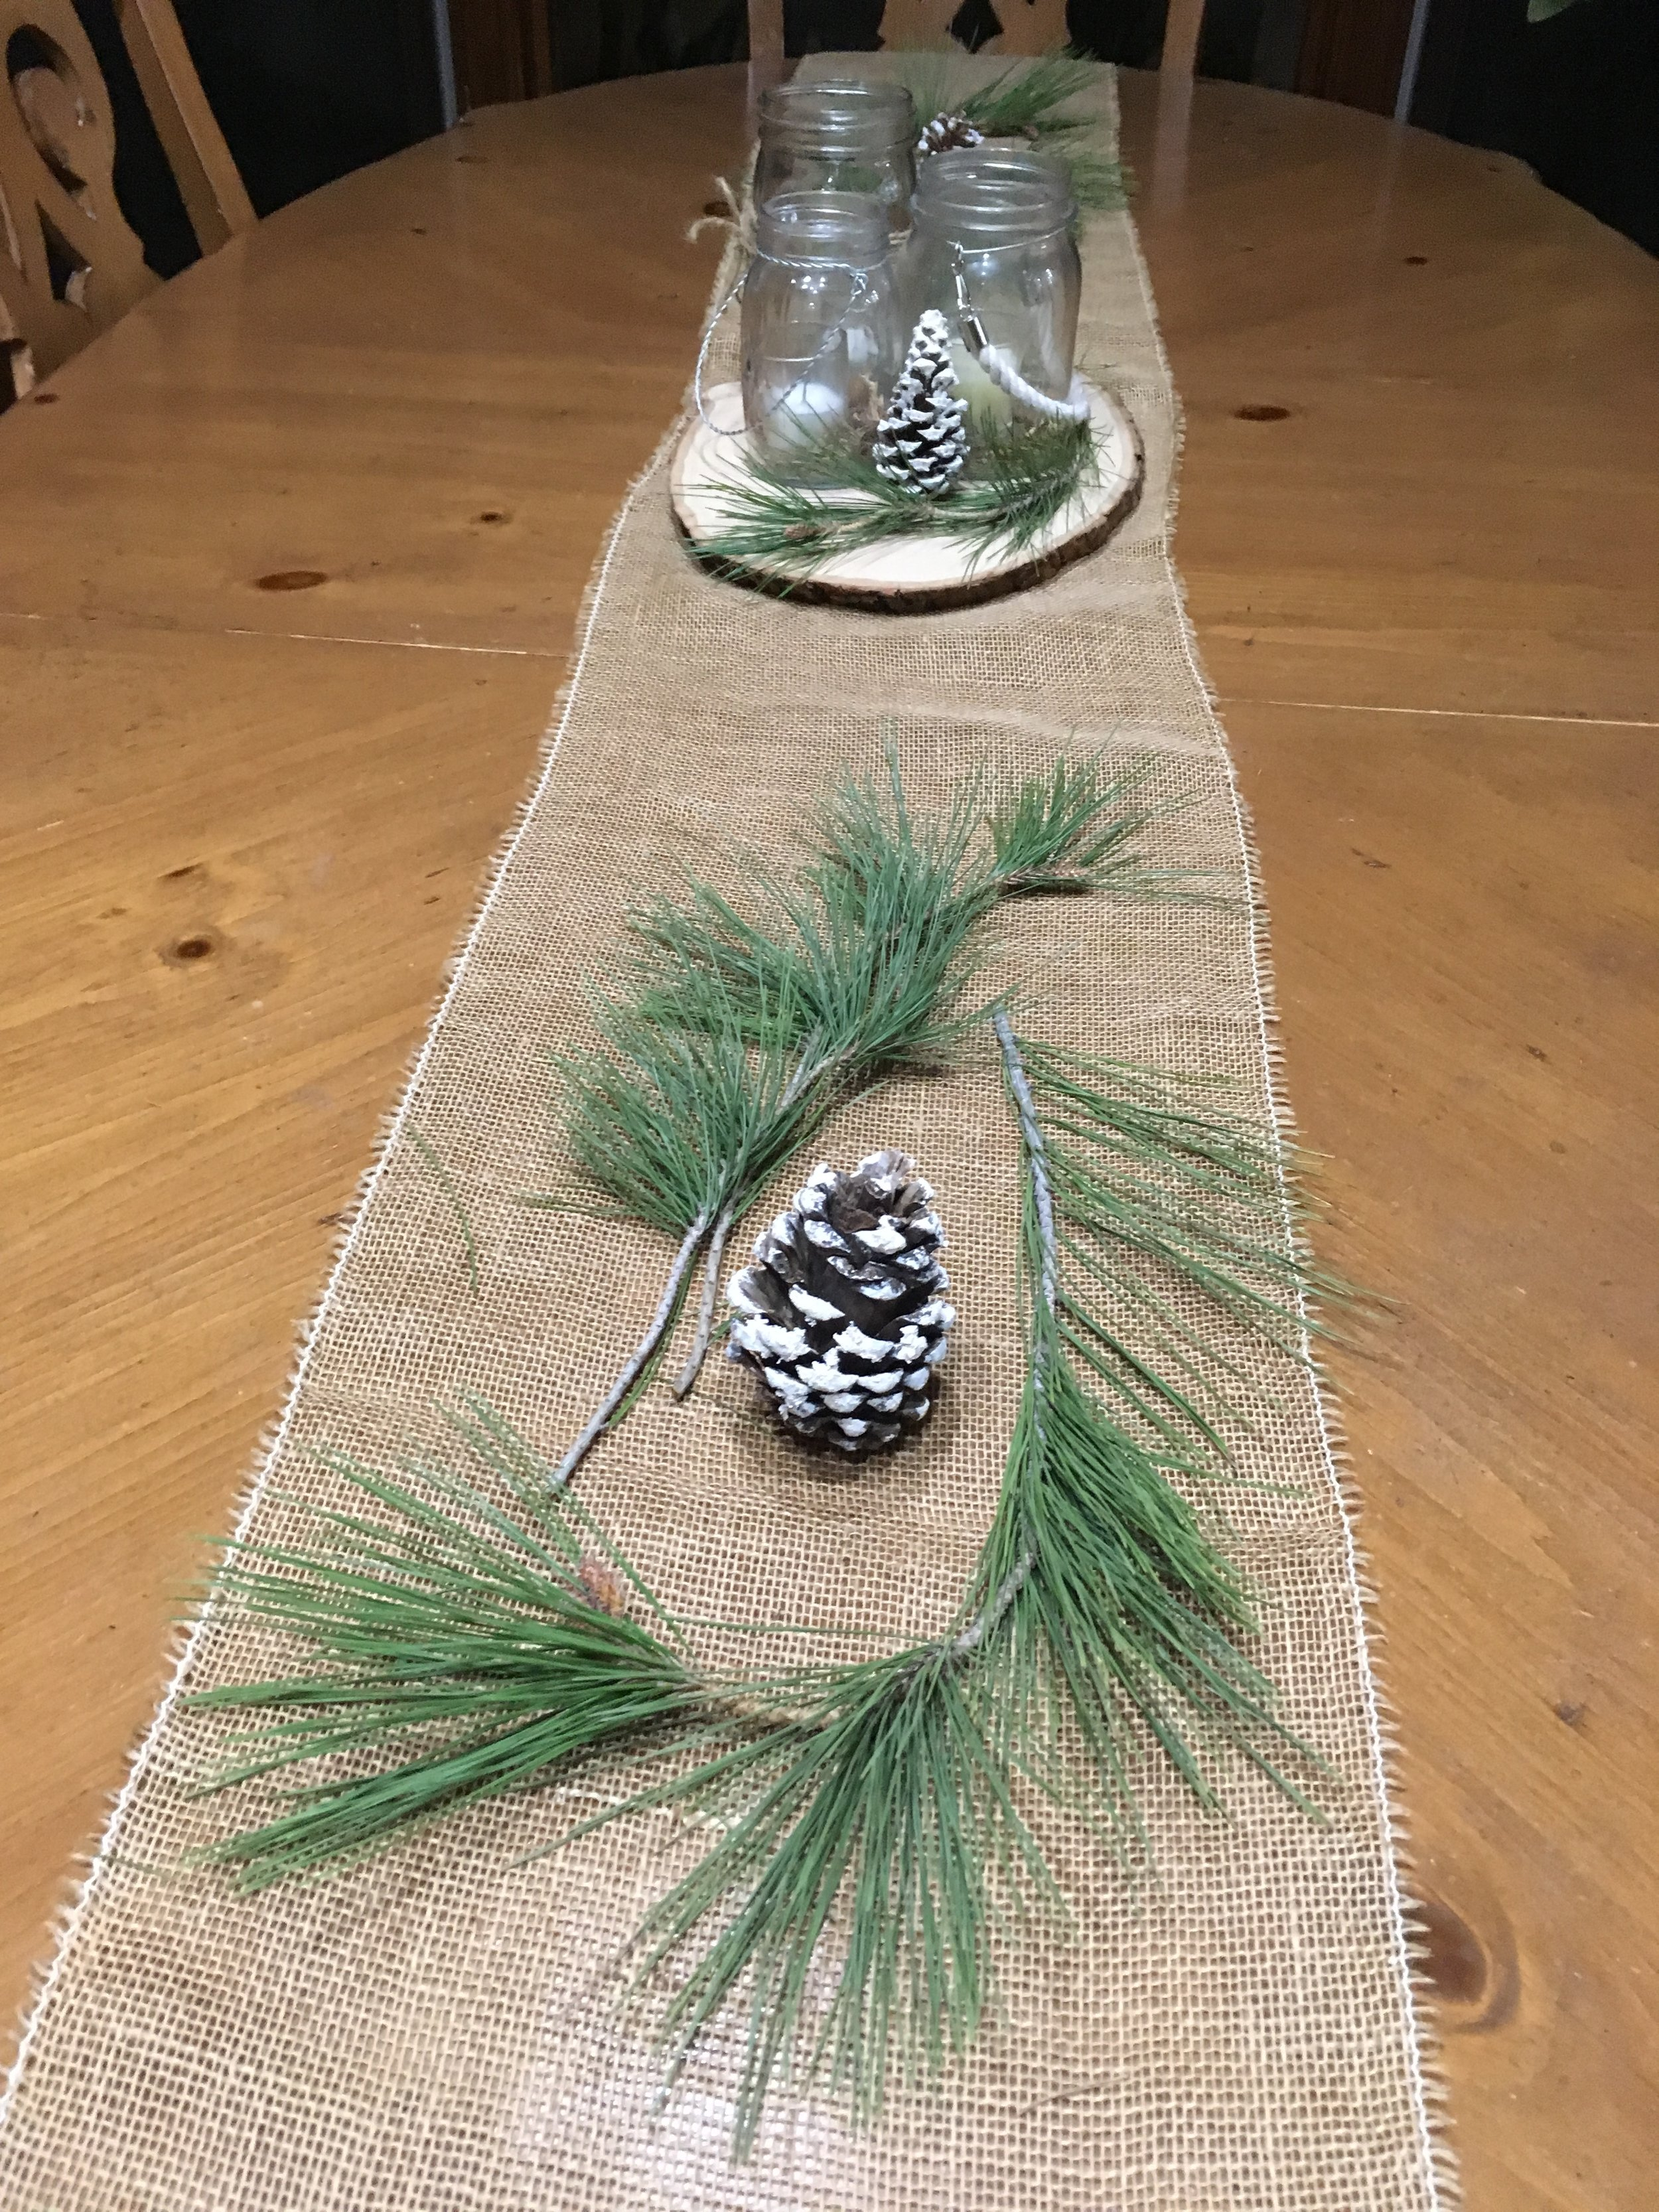 Simple table decorations - tammyblomsterberg.com.JPG